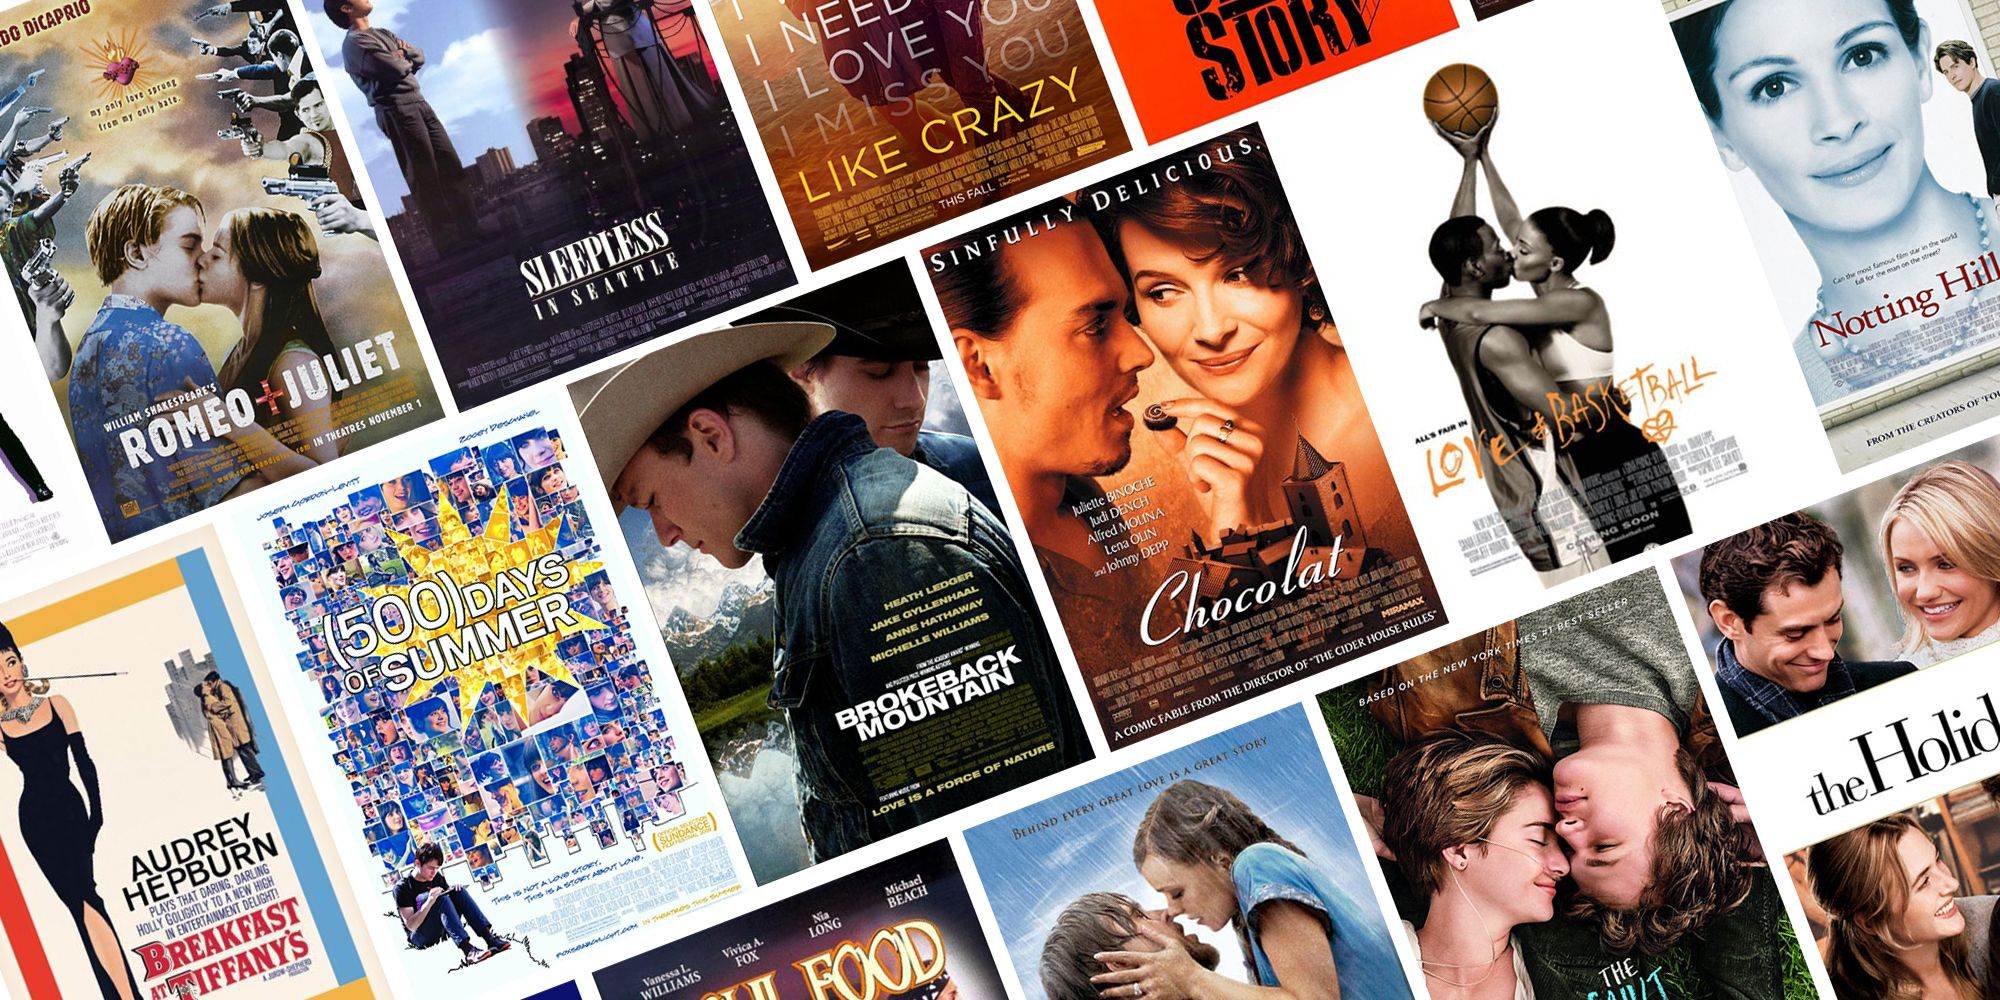 70 best romantic movies & comedies to watch in 2018 - rom coms we love